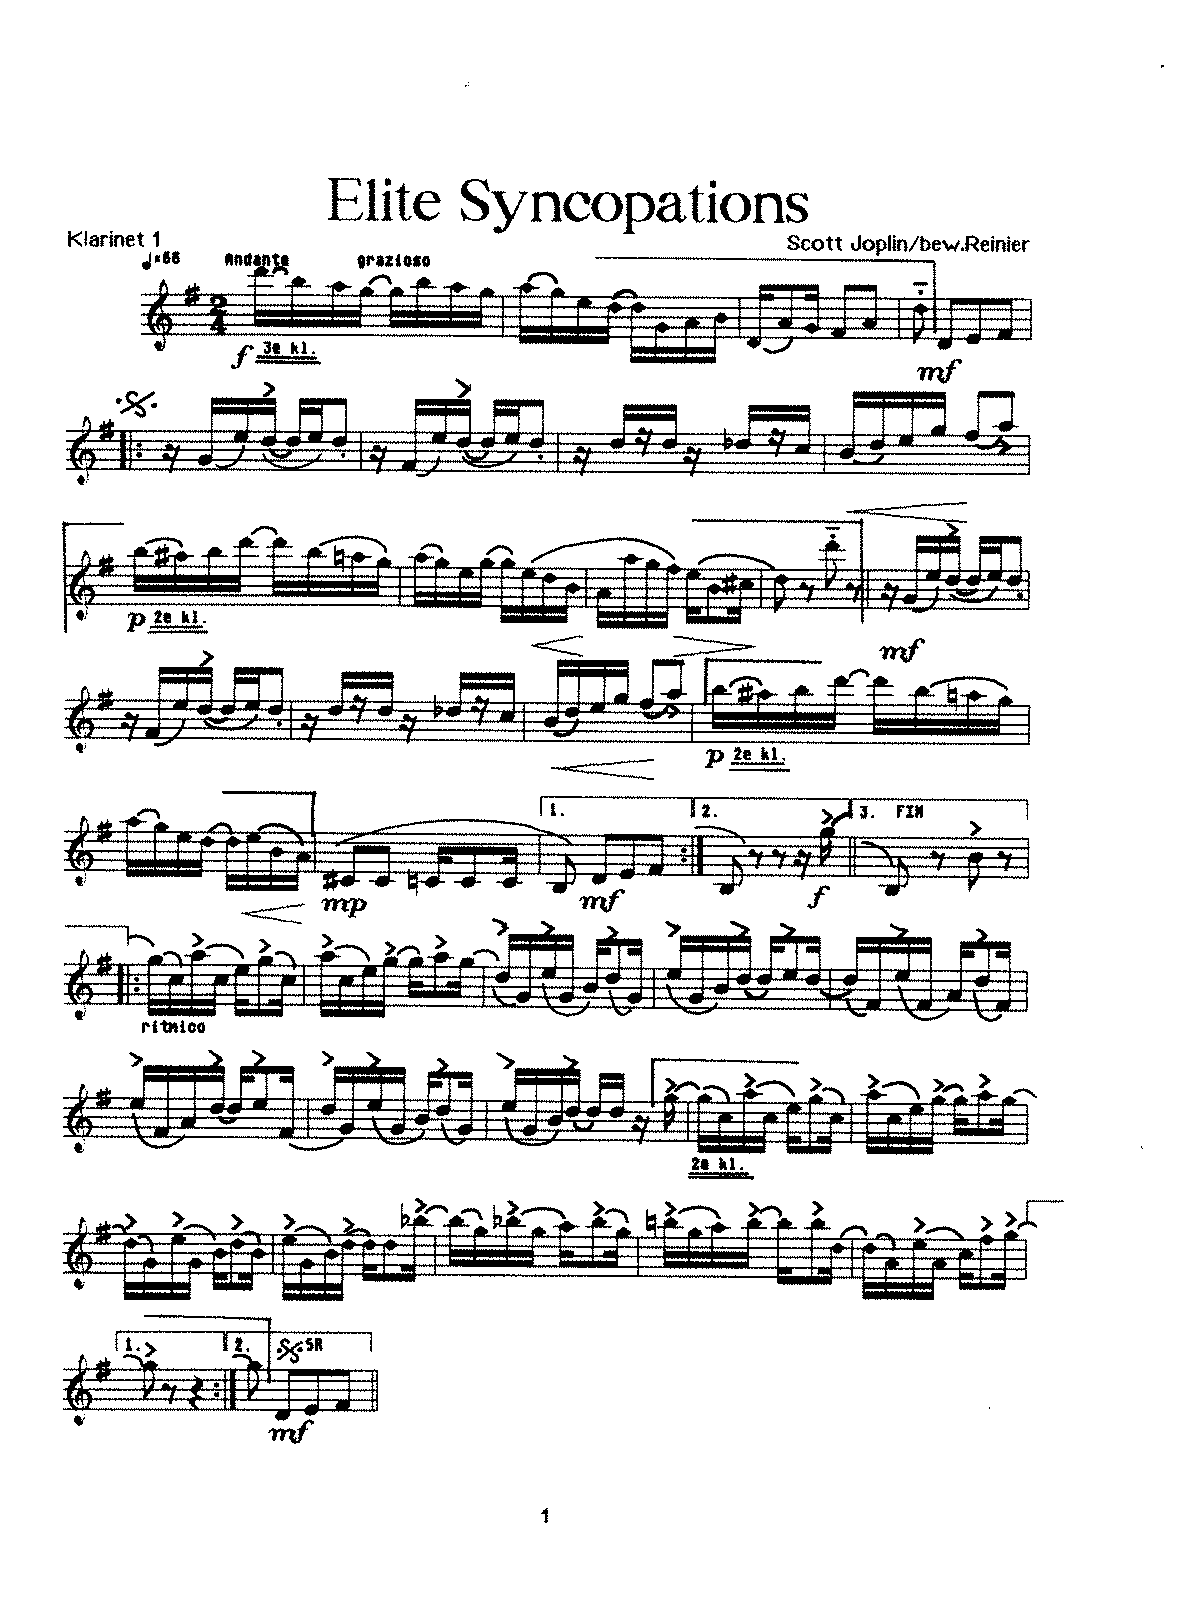 Scott Joplin - Elite Syncopations.pdf